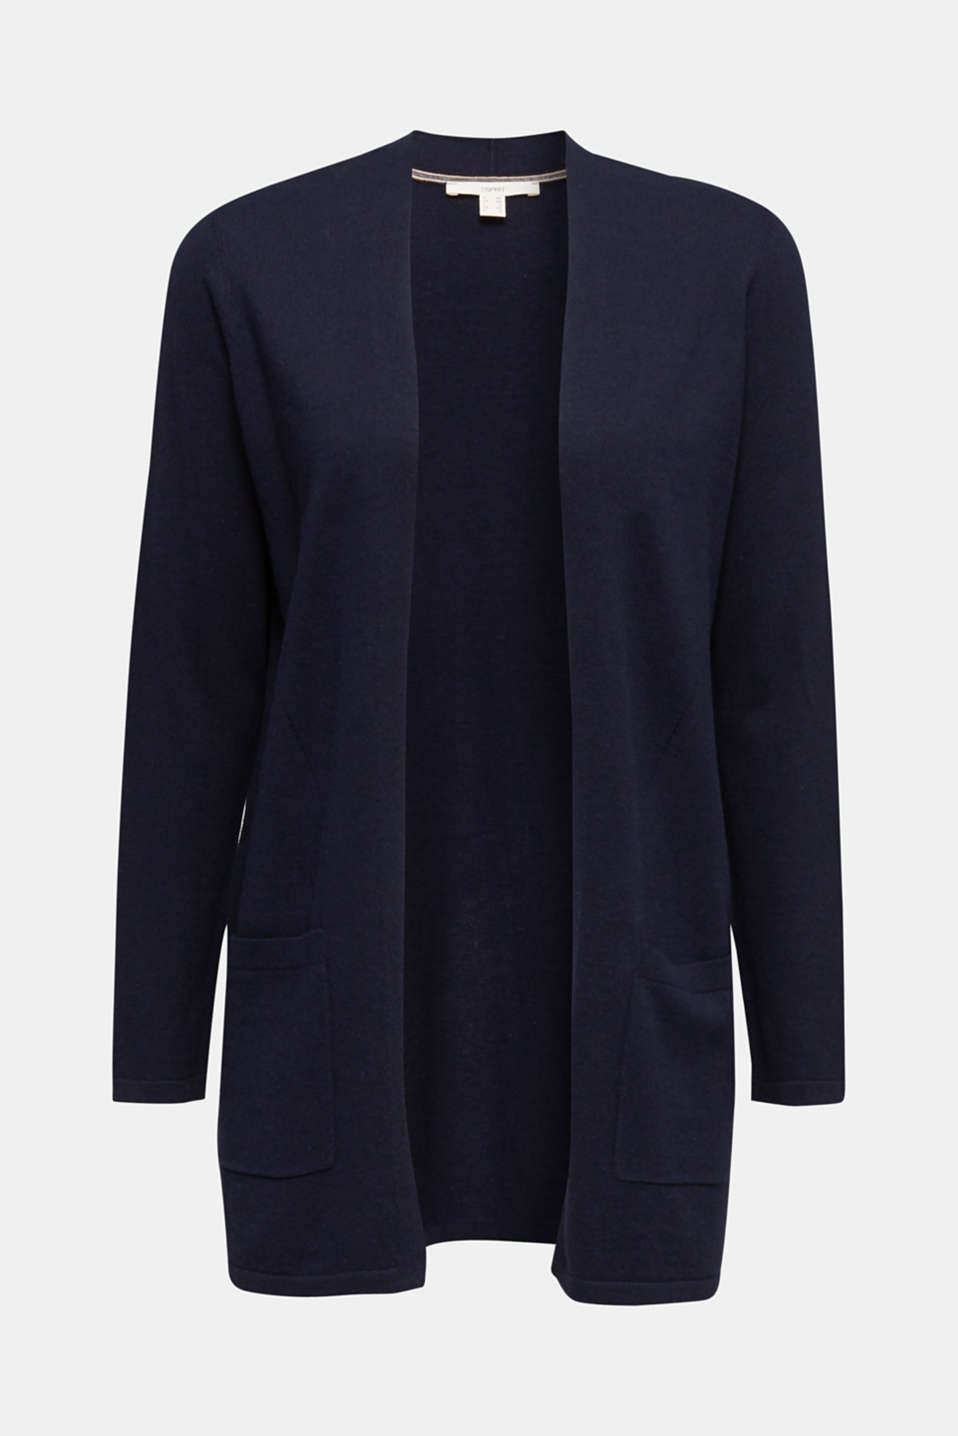 With linen: open cardigan with open-work pattern details, NAVY, detail image number 6